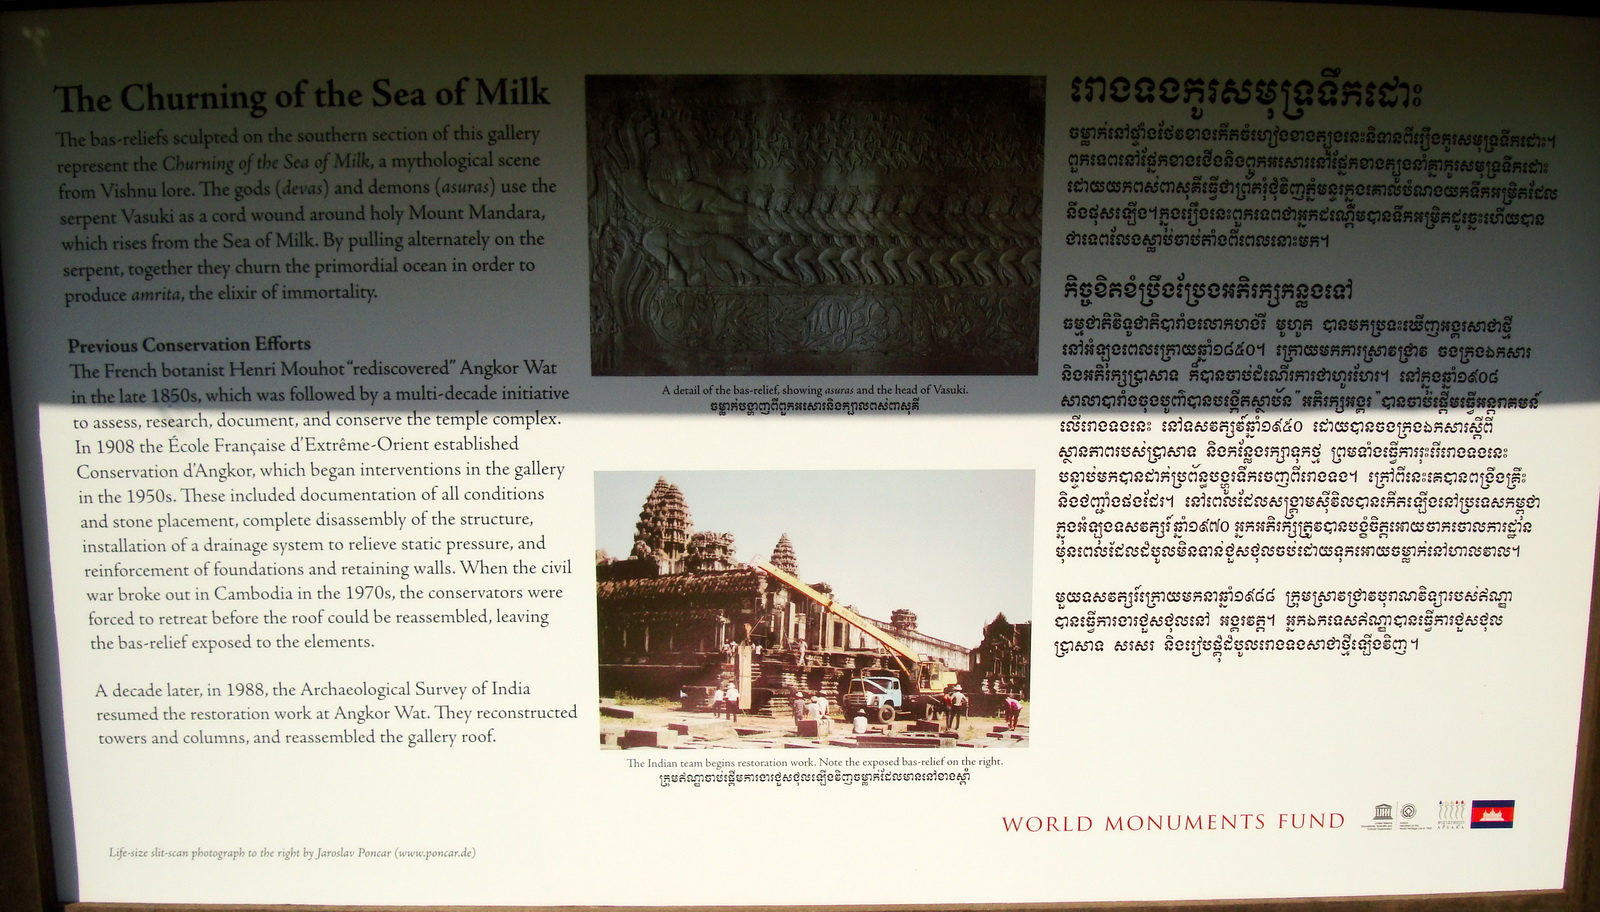 1 Angkor Wat notice board Churning of the sea of milk 0A